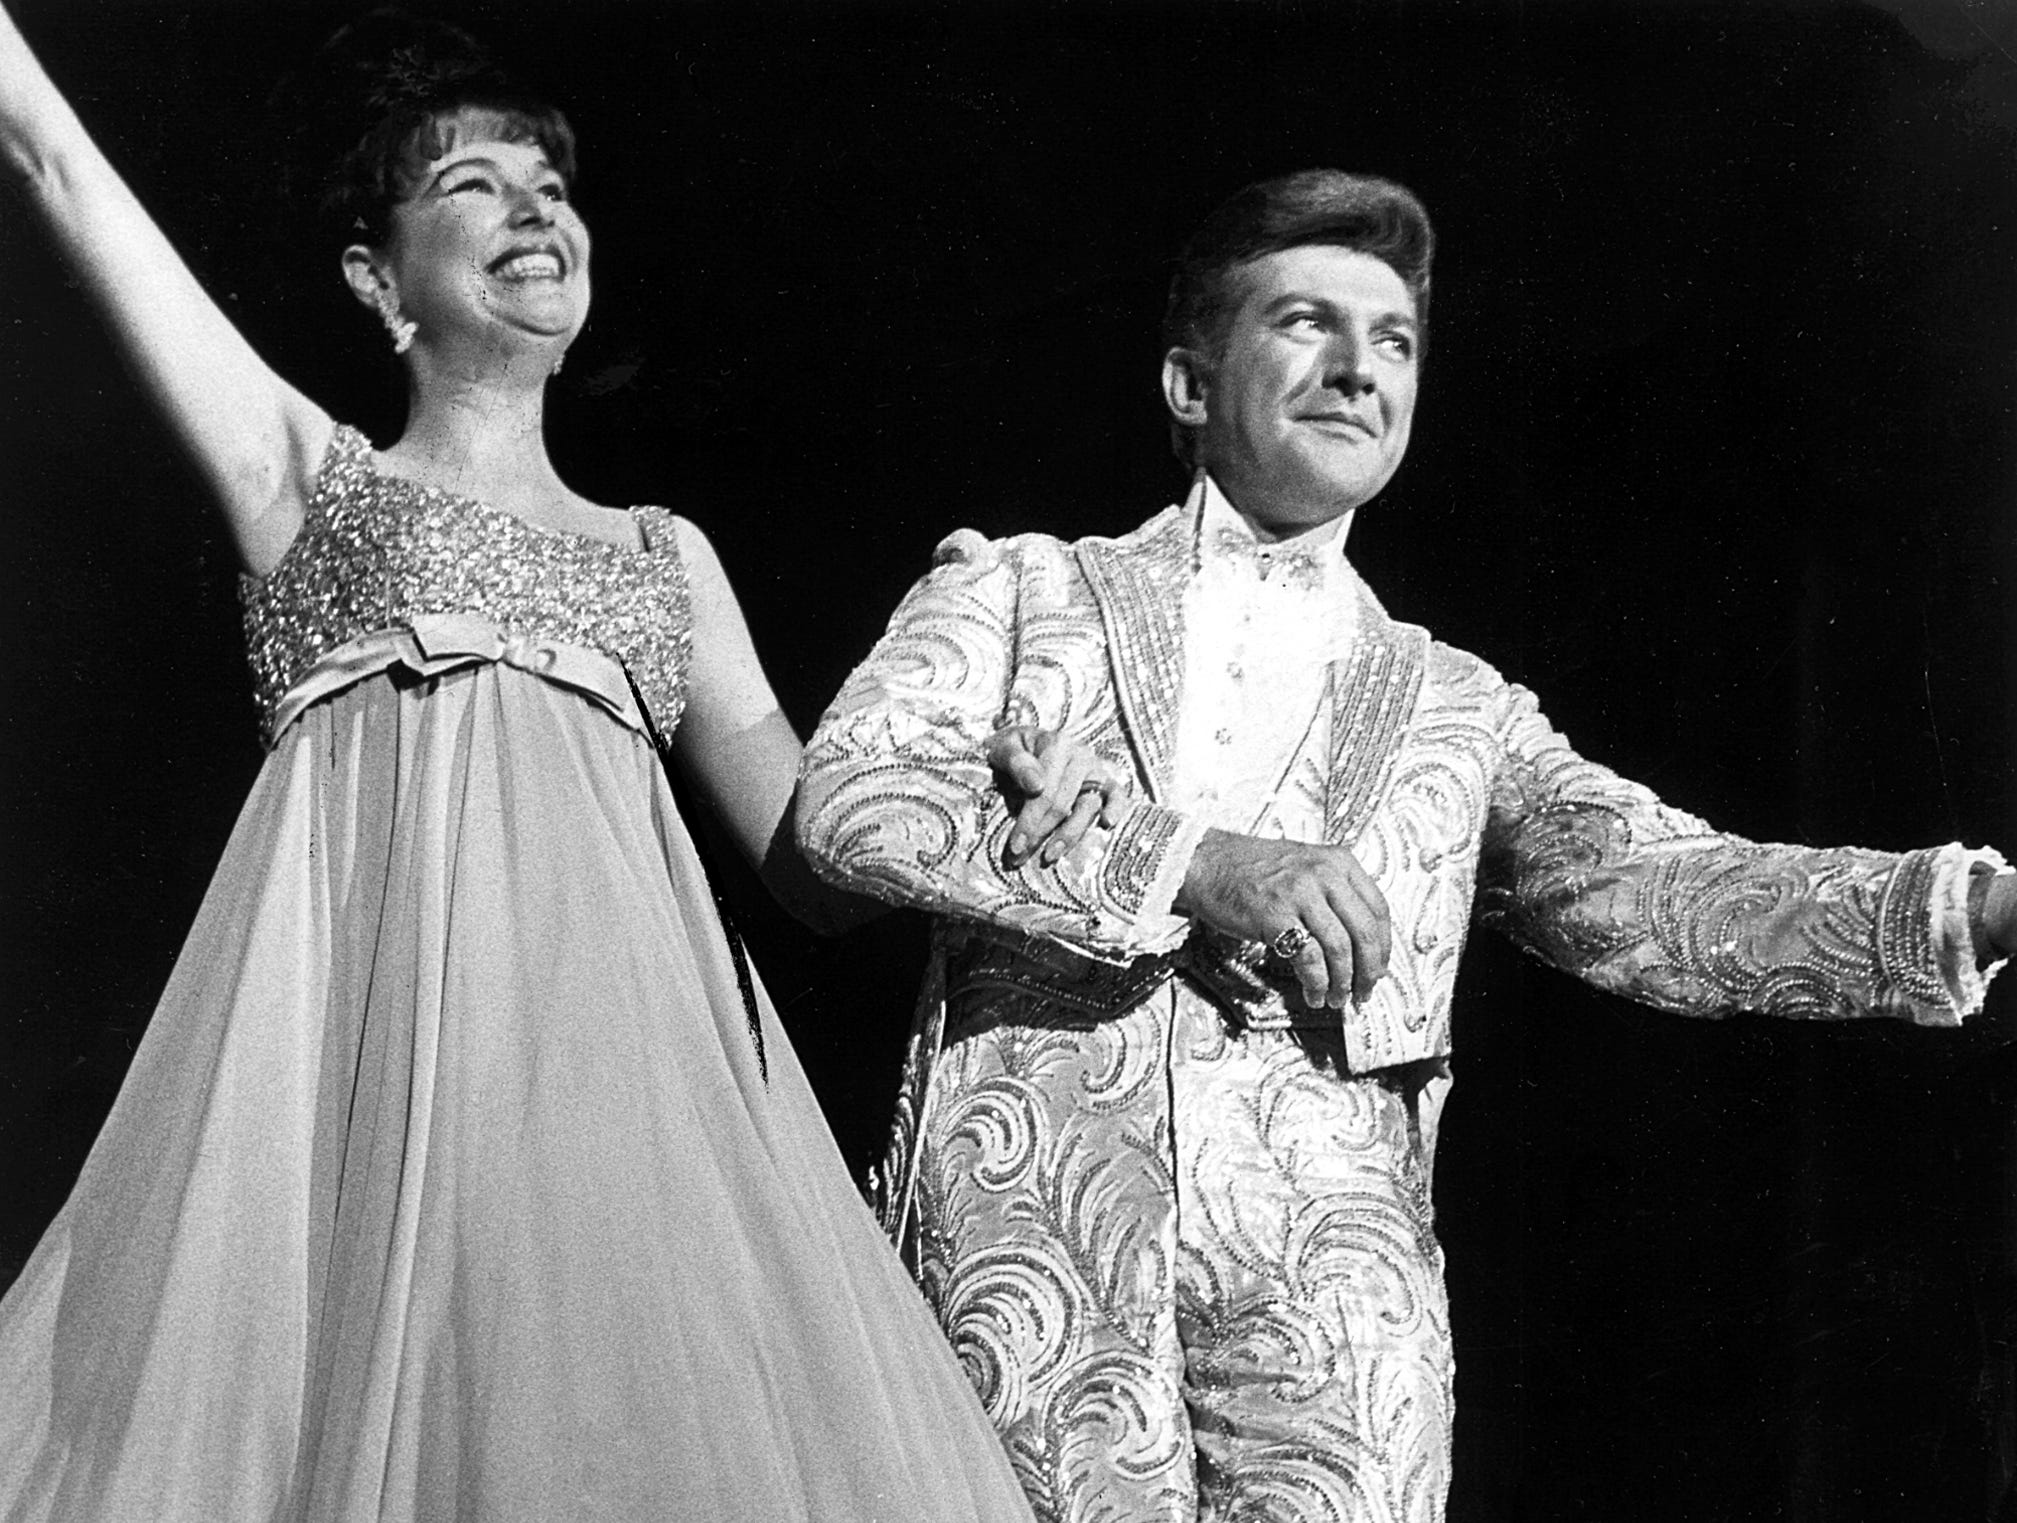 December 1965 - Liberace brought his flamboyant style and talent to Memphis in December 1965. Here he is with Karen Wessler.